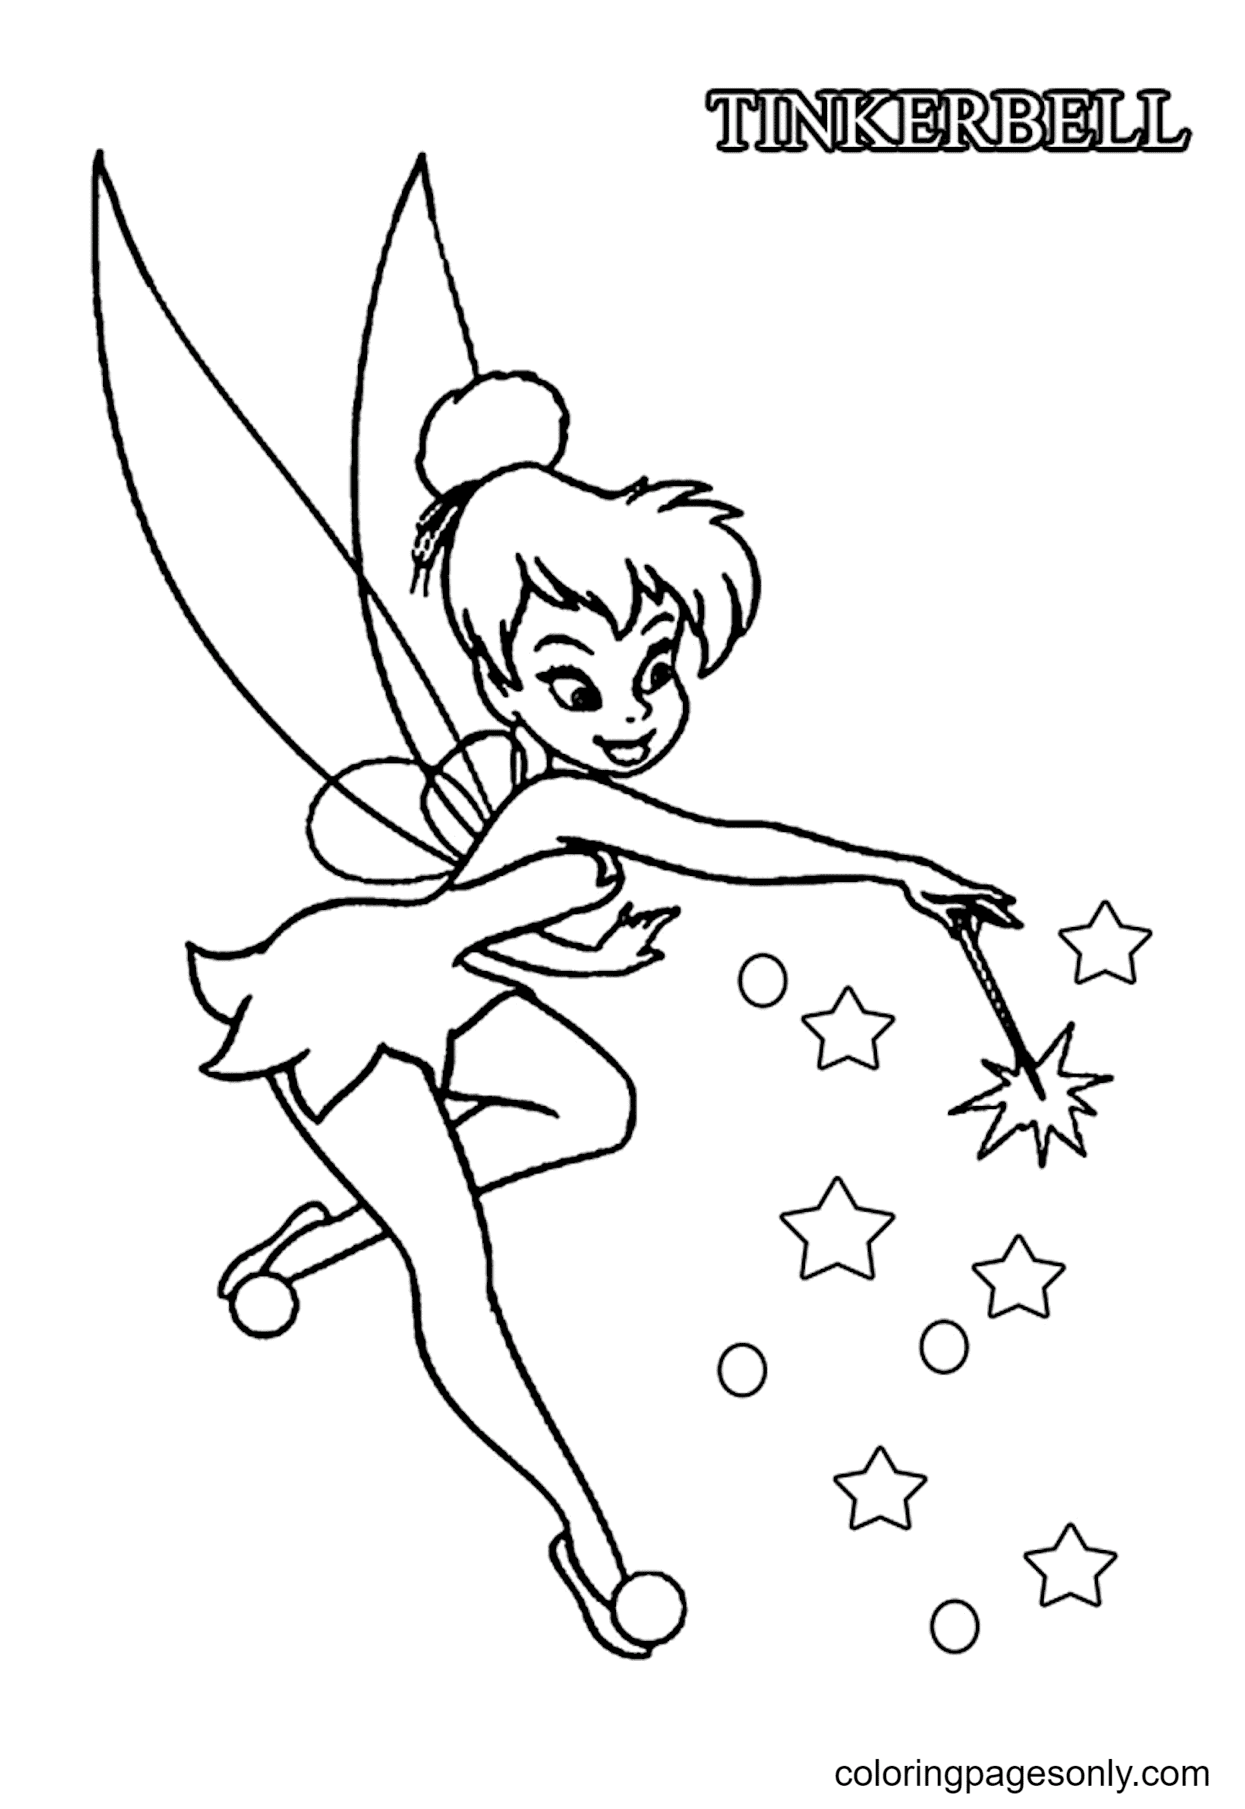 Happy TinkerBell Coloring Page